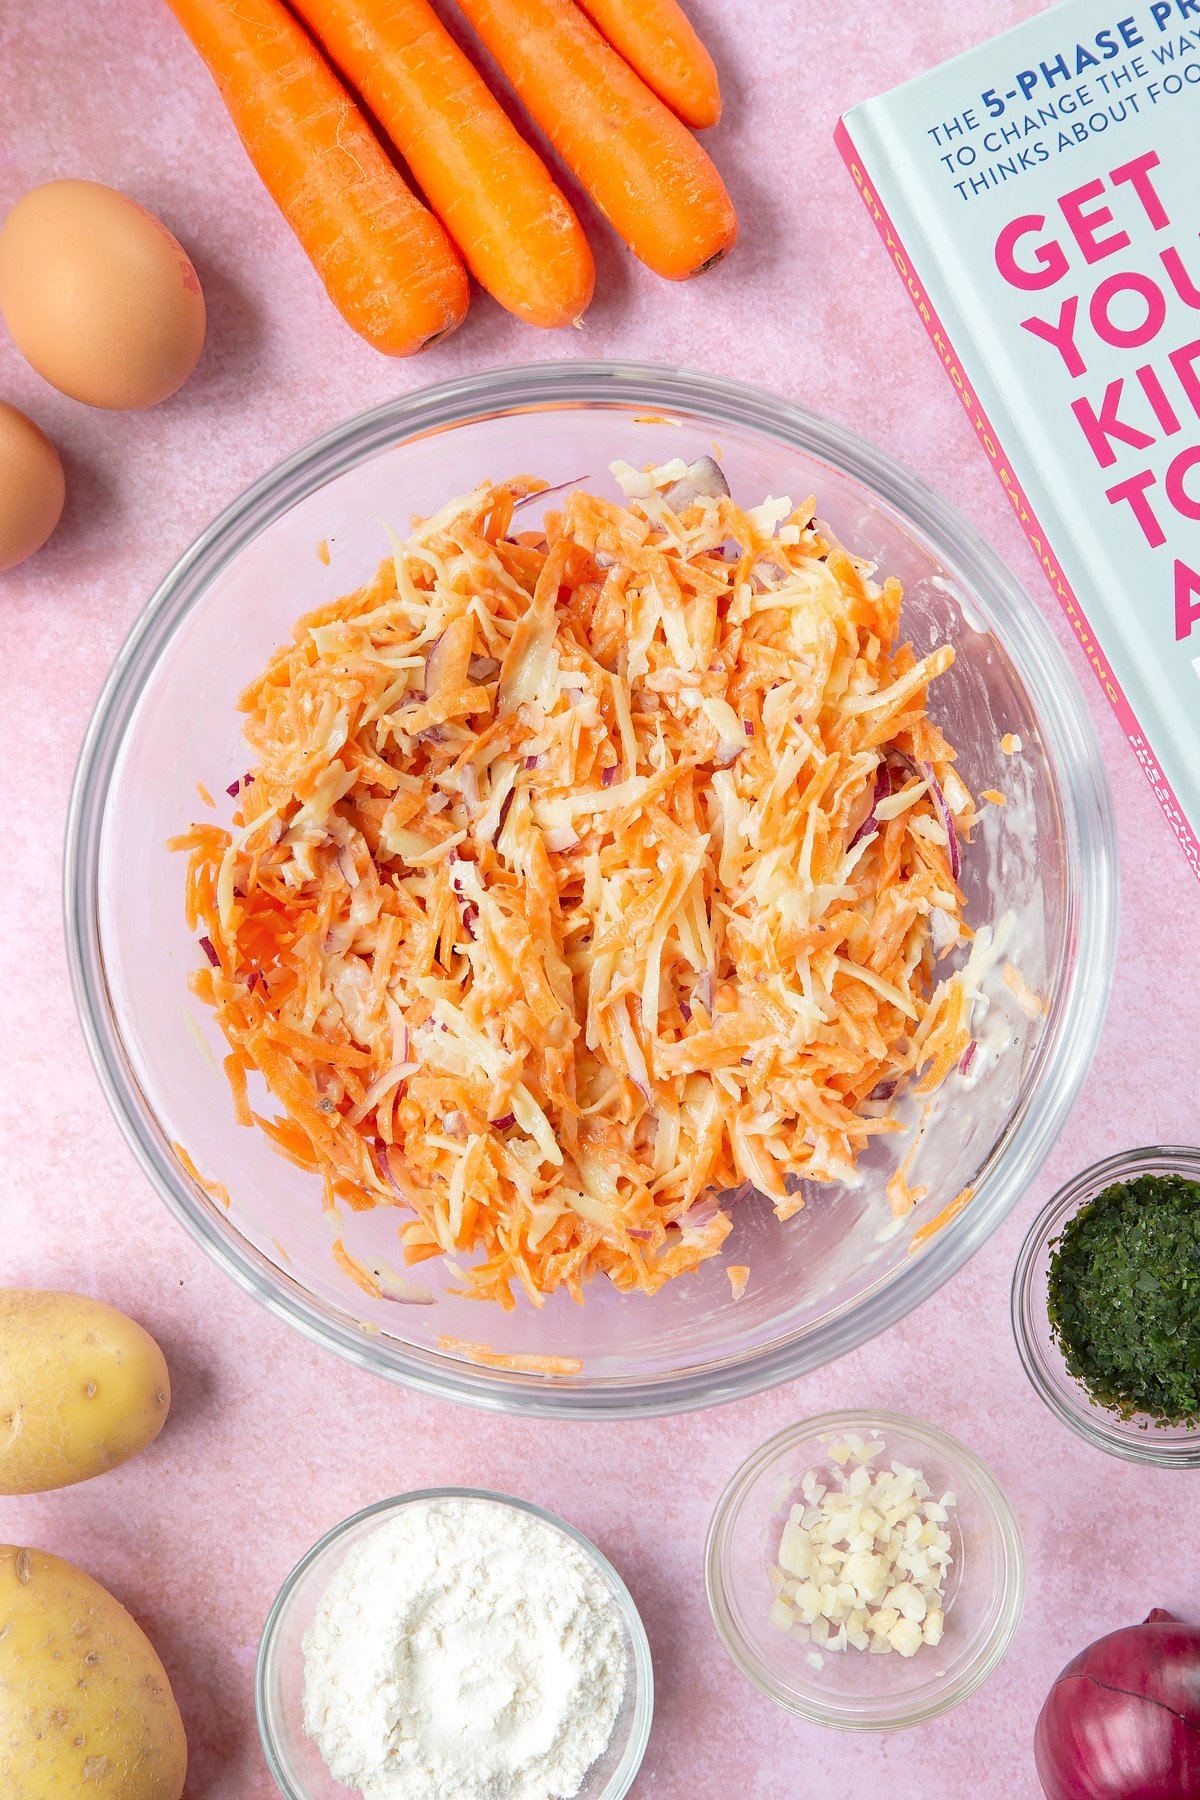 Grated carrot, potato and red onion mixed with a batter made from flour, eggs, salt and pepper in a mixing bowl. The bowl is surrounded by ingredients to make carrot patties.